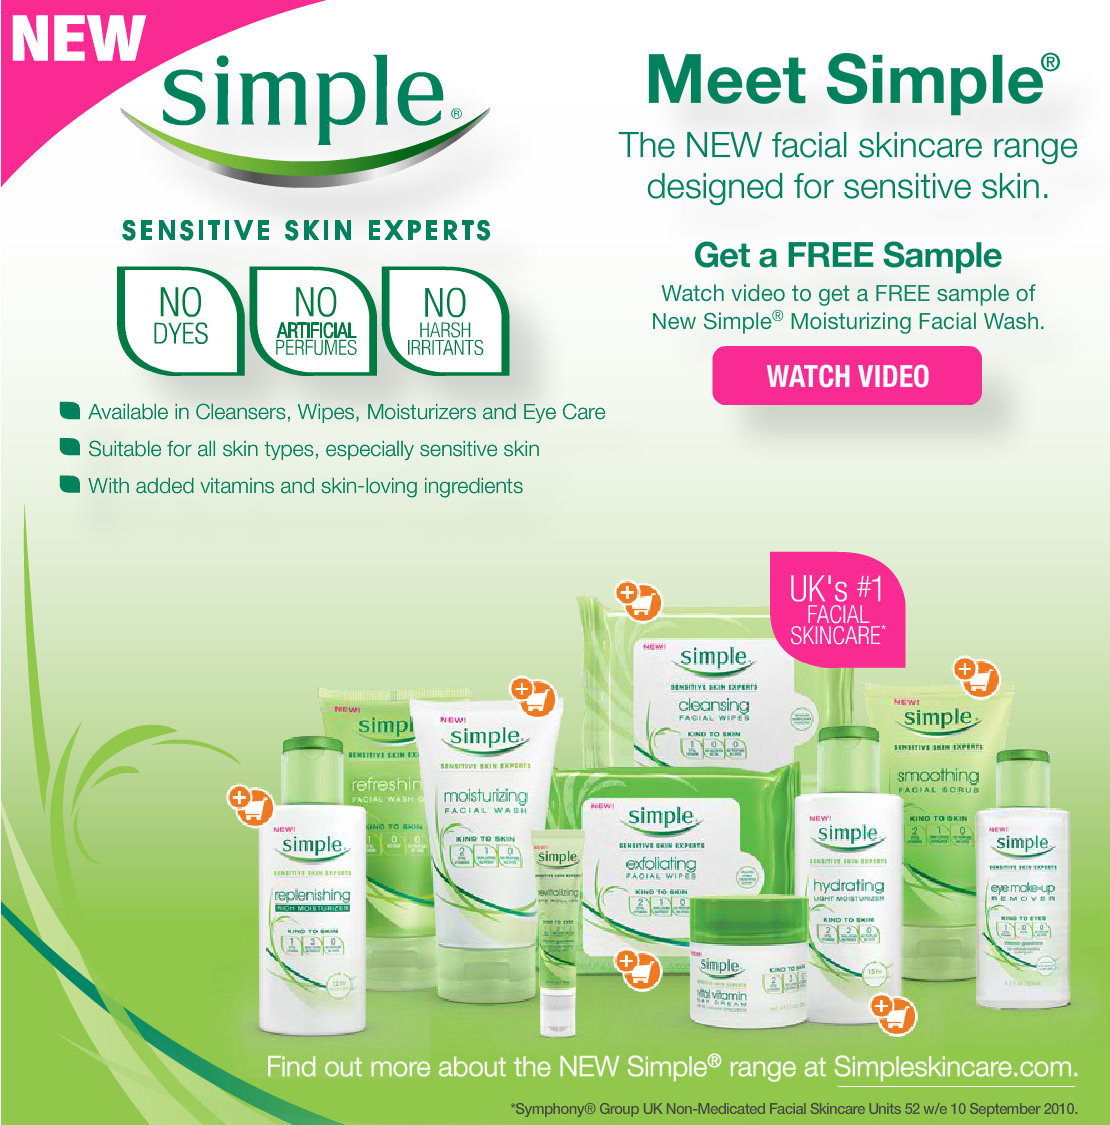 The lowest priced Simple Product that Rite Aid sells (excluding wipes) according to their online pricing is Simple Moisturizing Face Wash for $ After the BOGO 50% off sale and 2 of these new coupons, you can score this face wash for as low as $ a bottle!